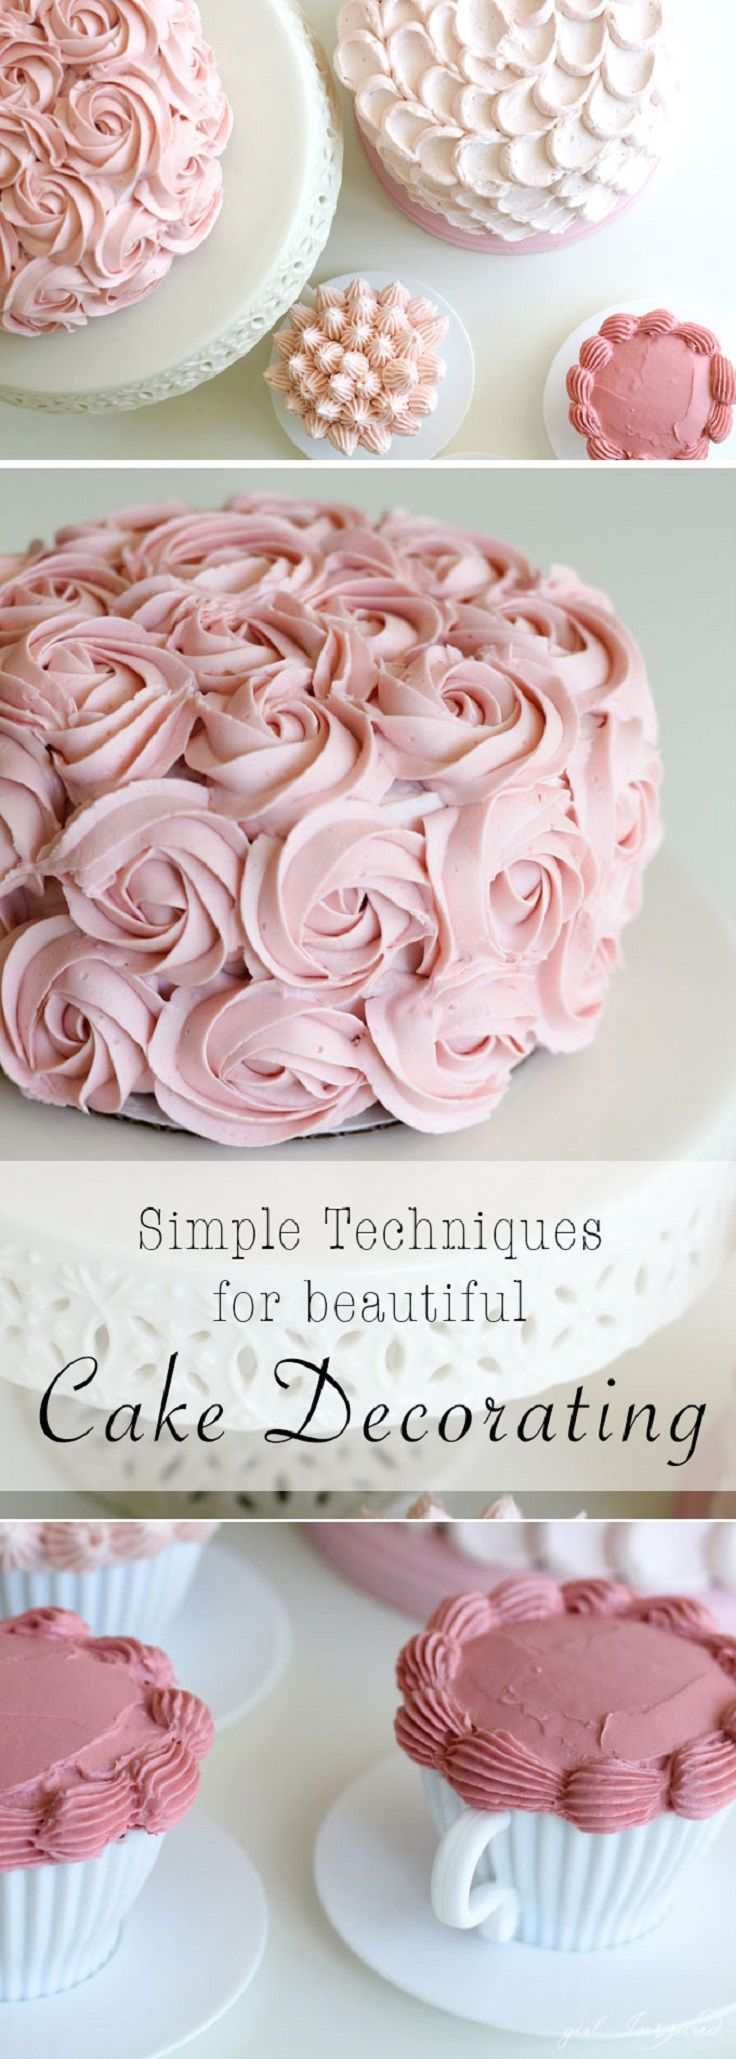 Best 25 simple cake decorating ideas on pinterest simple cakes easy cake decorating and cookie cake decorations